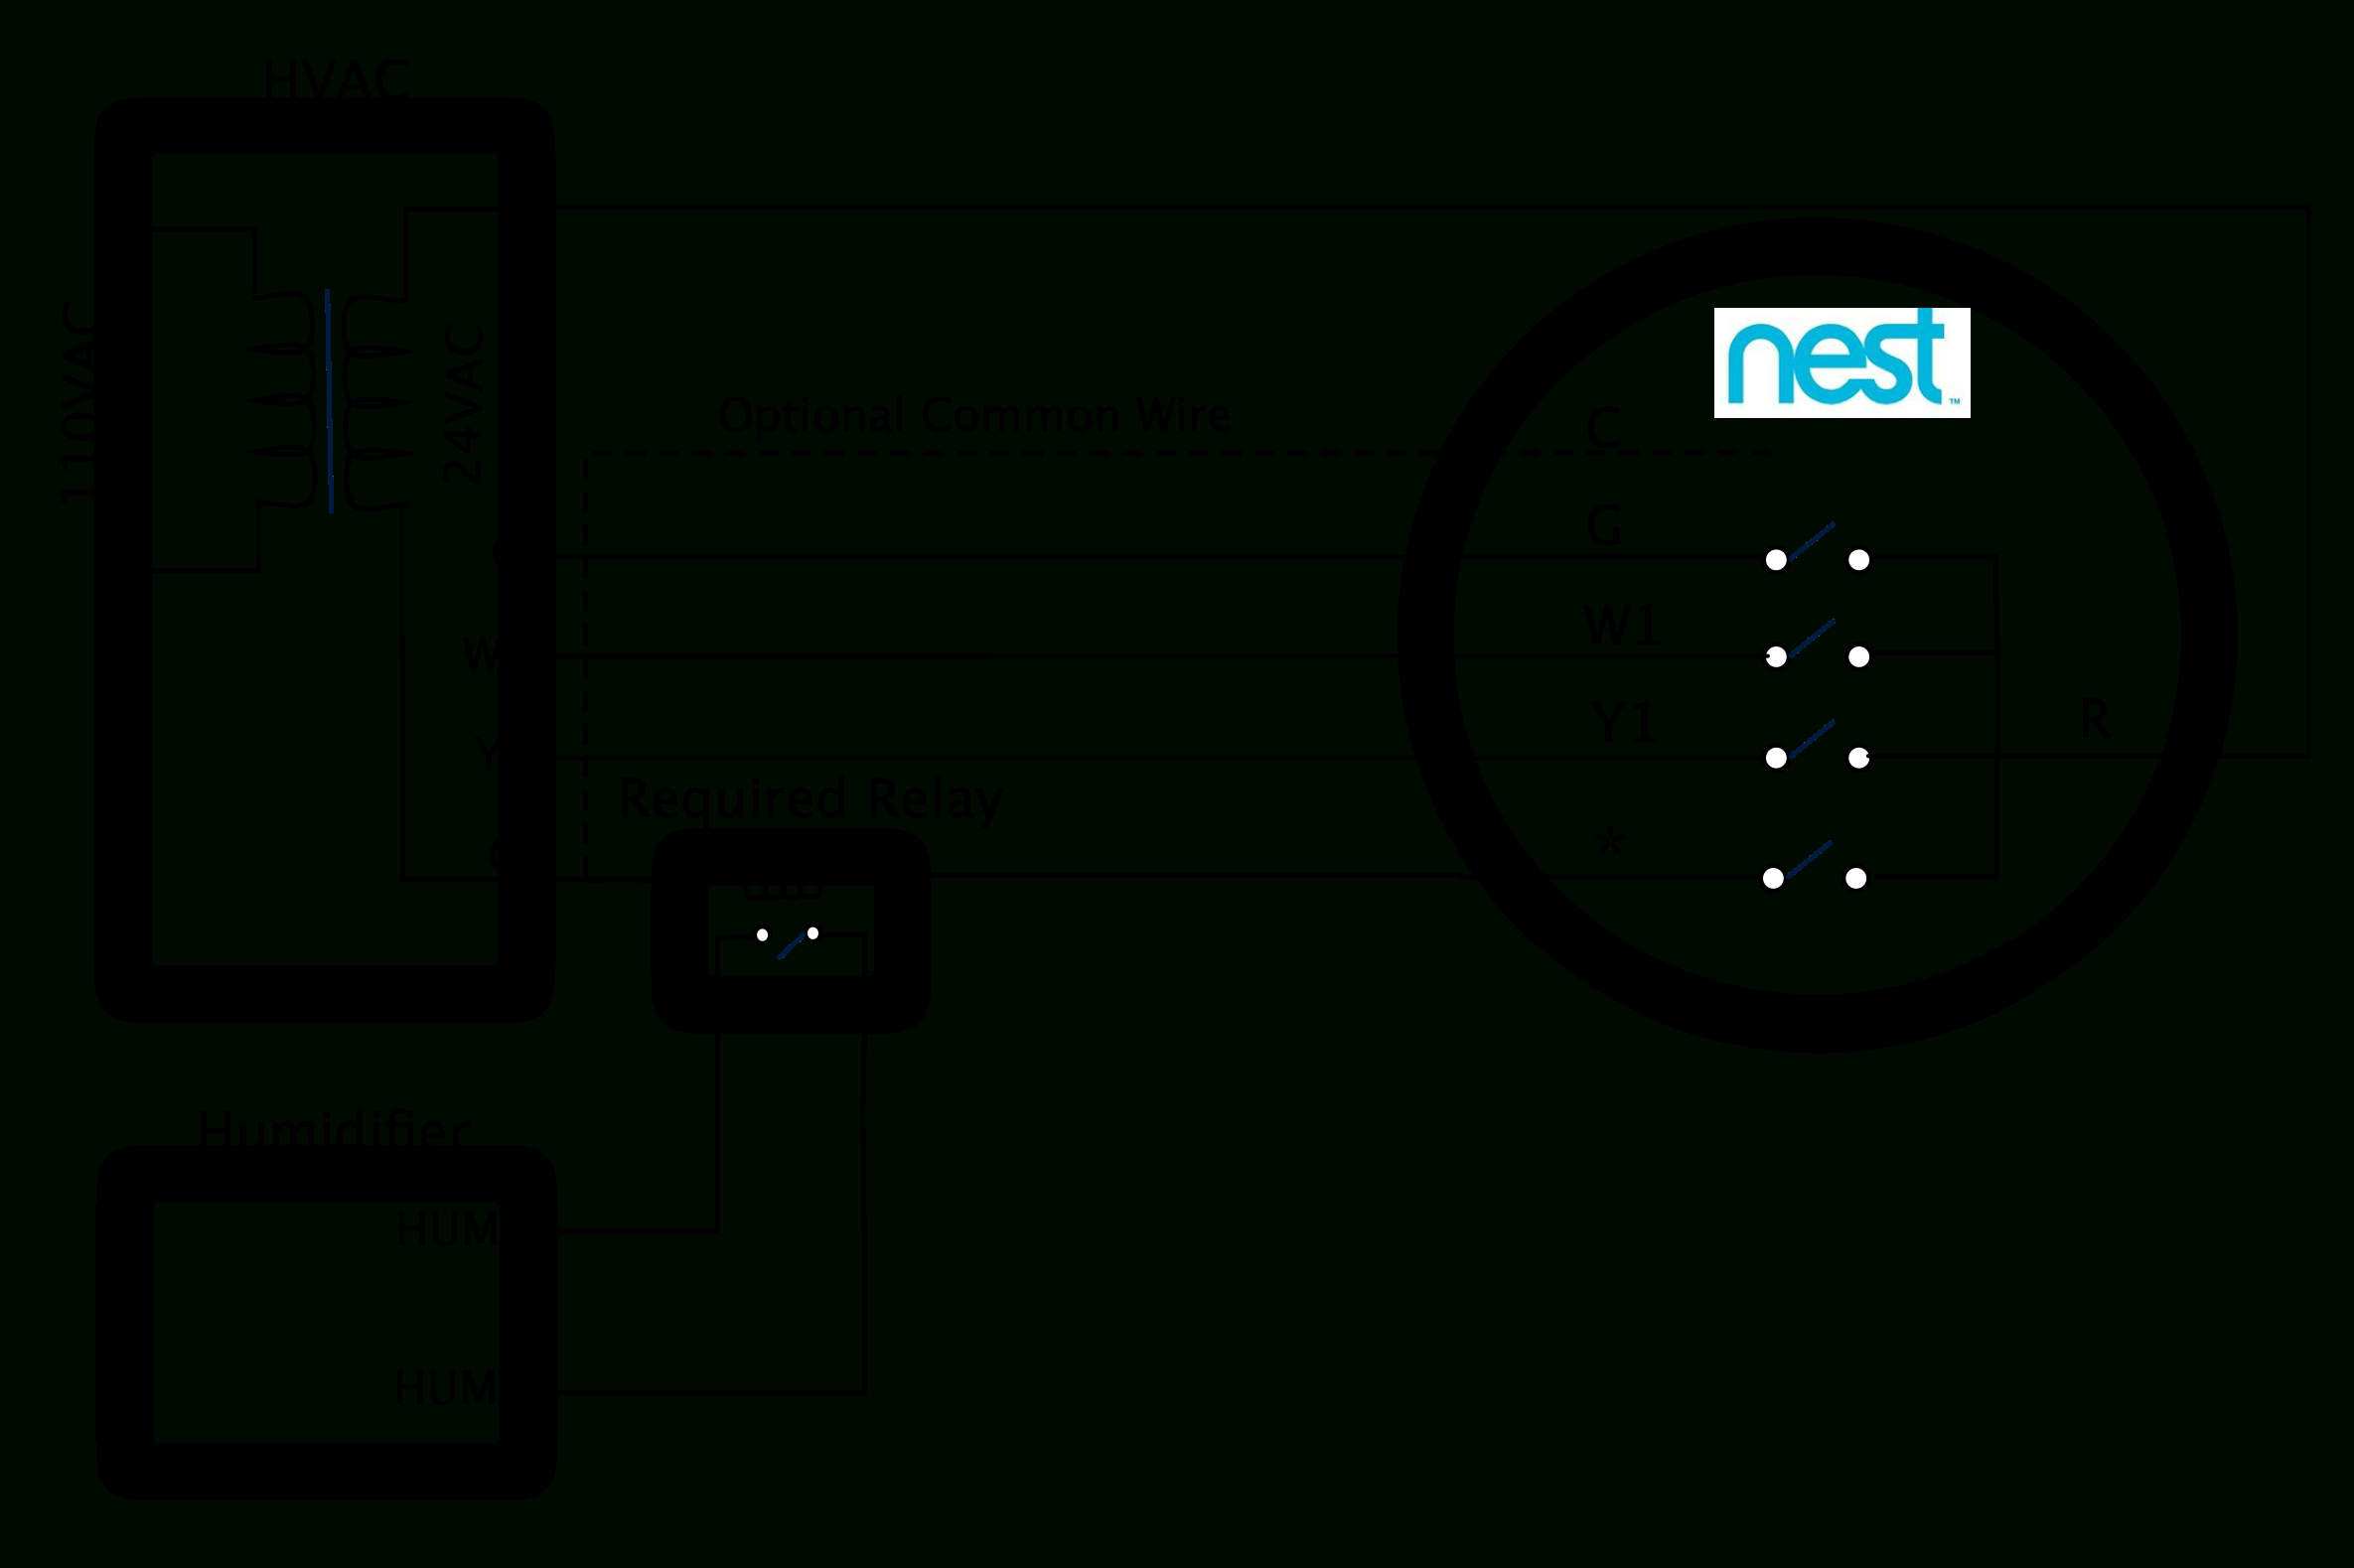 Nest Room Thermostat Wiring Diagram | Wiring Diagram - Nest Thermostat Wiring Diagram Combi